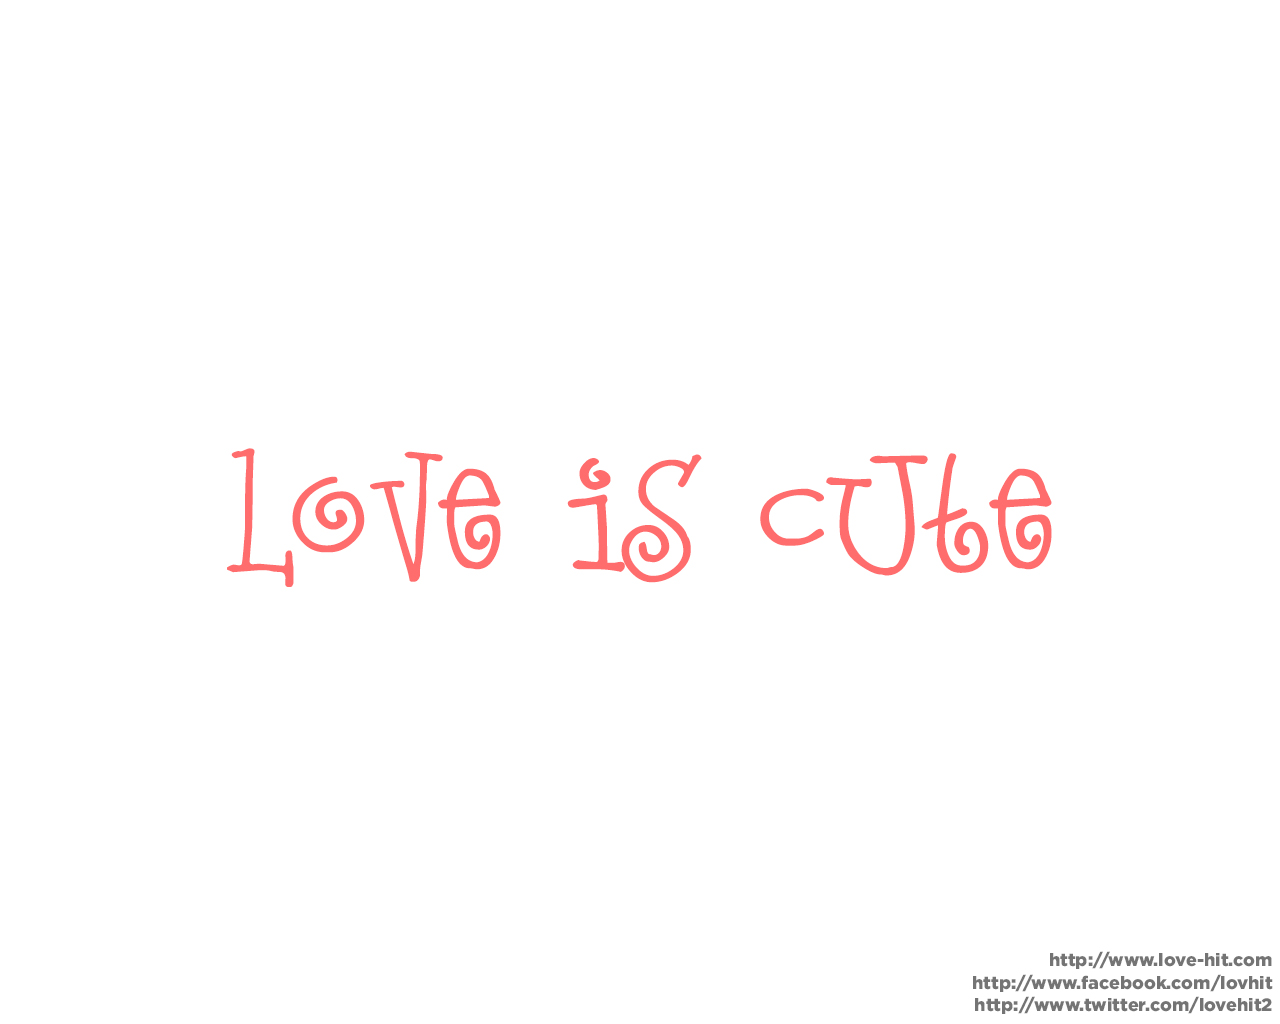 Love is cute